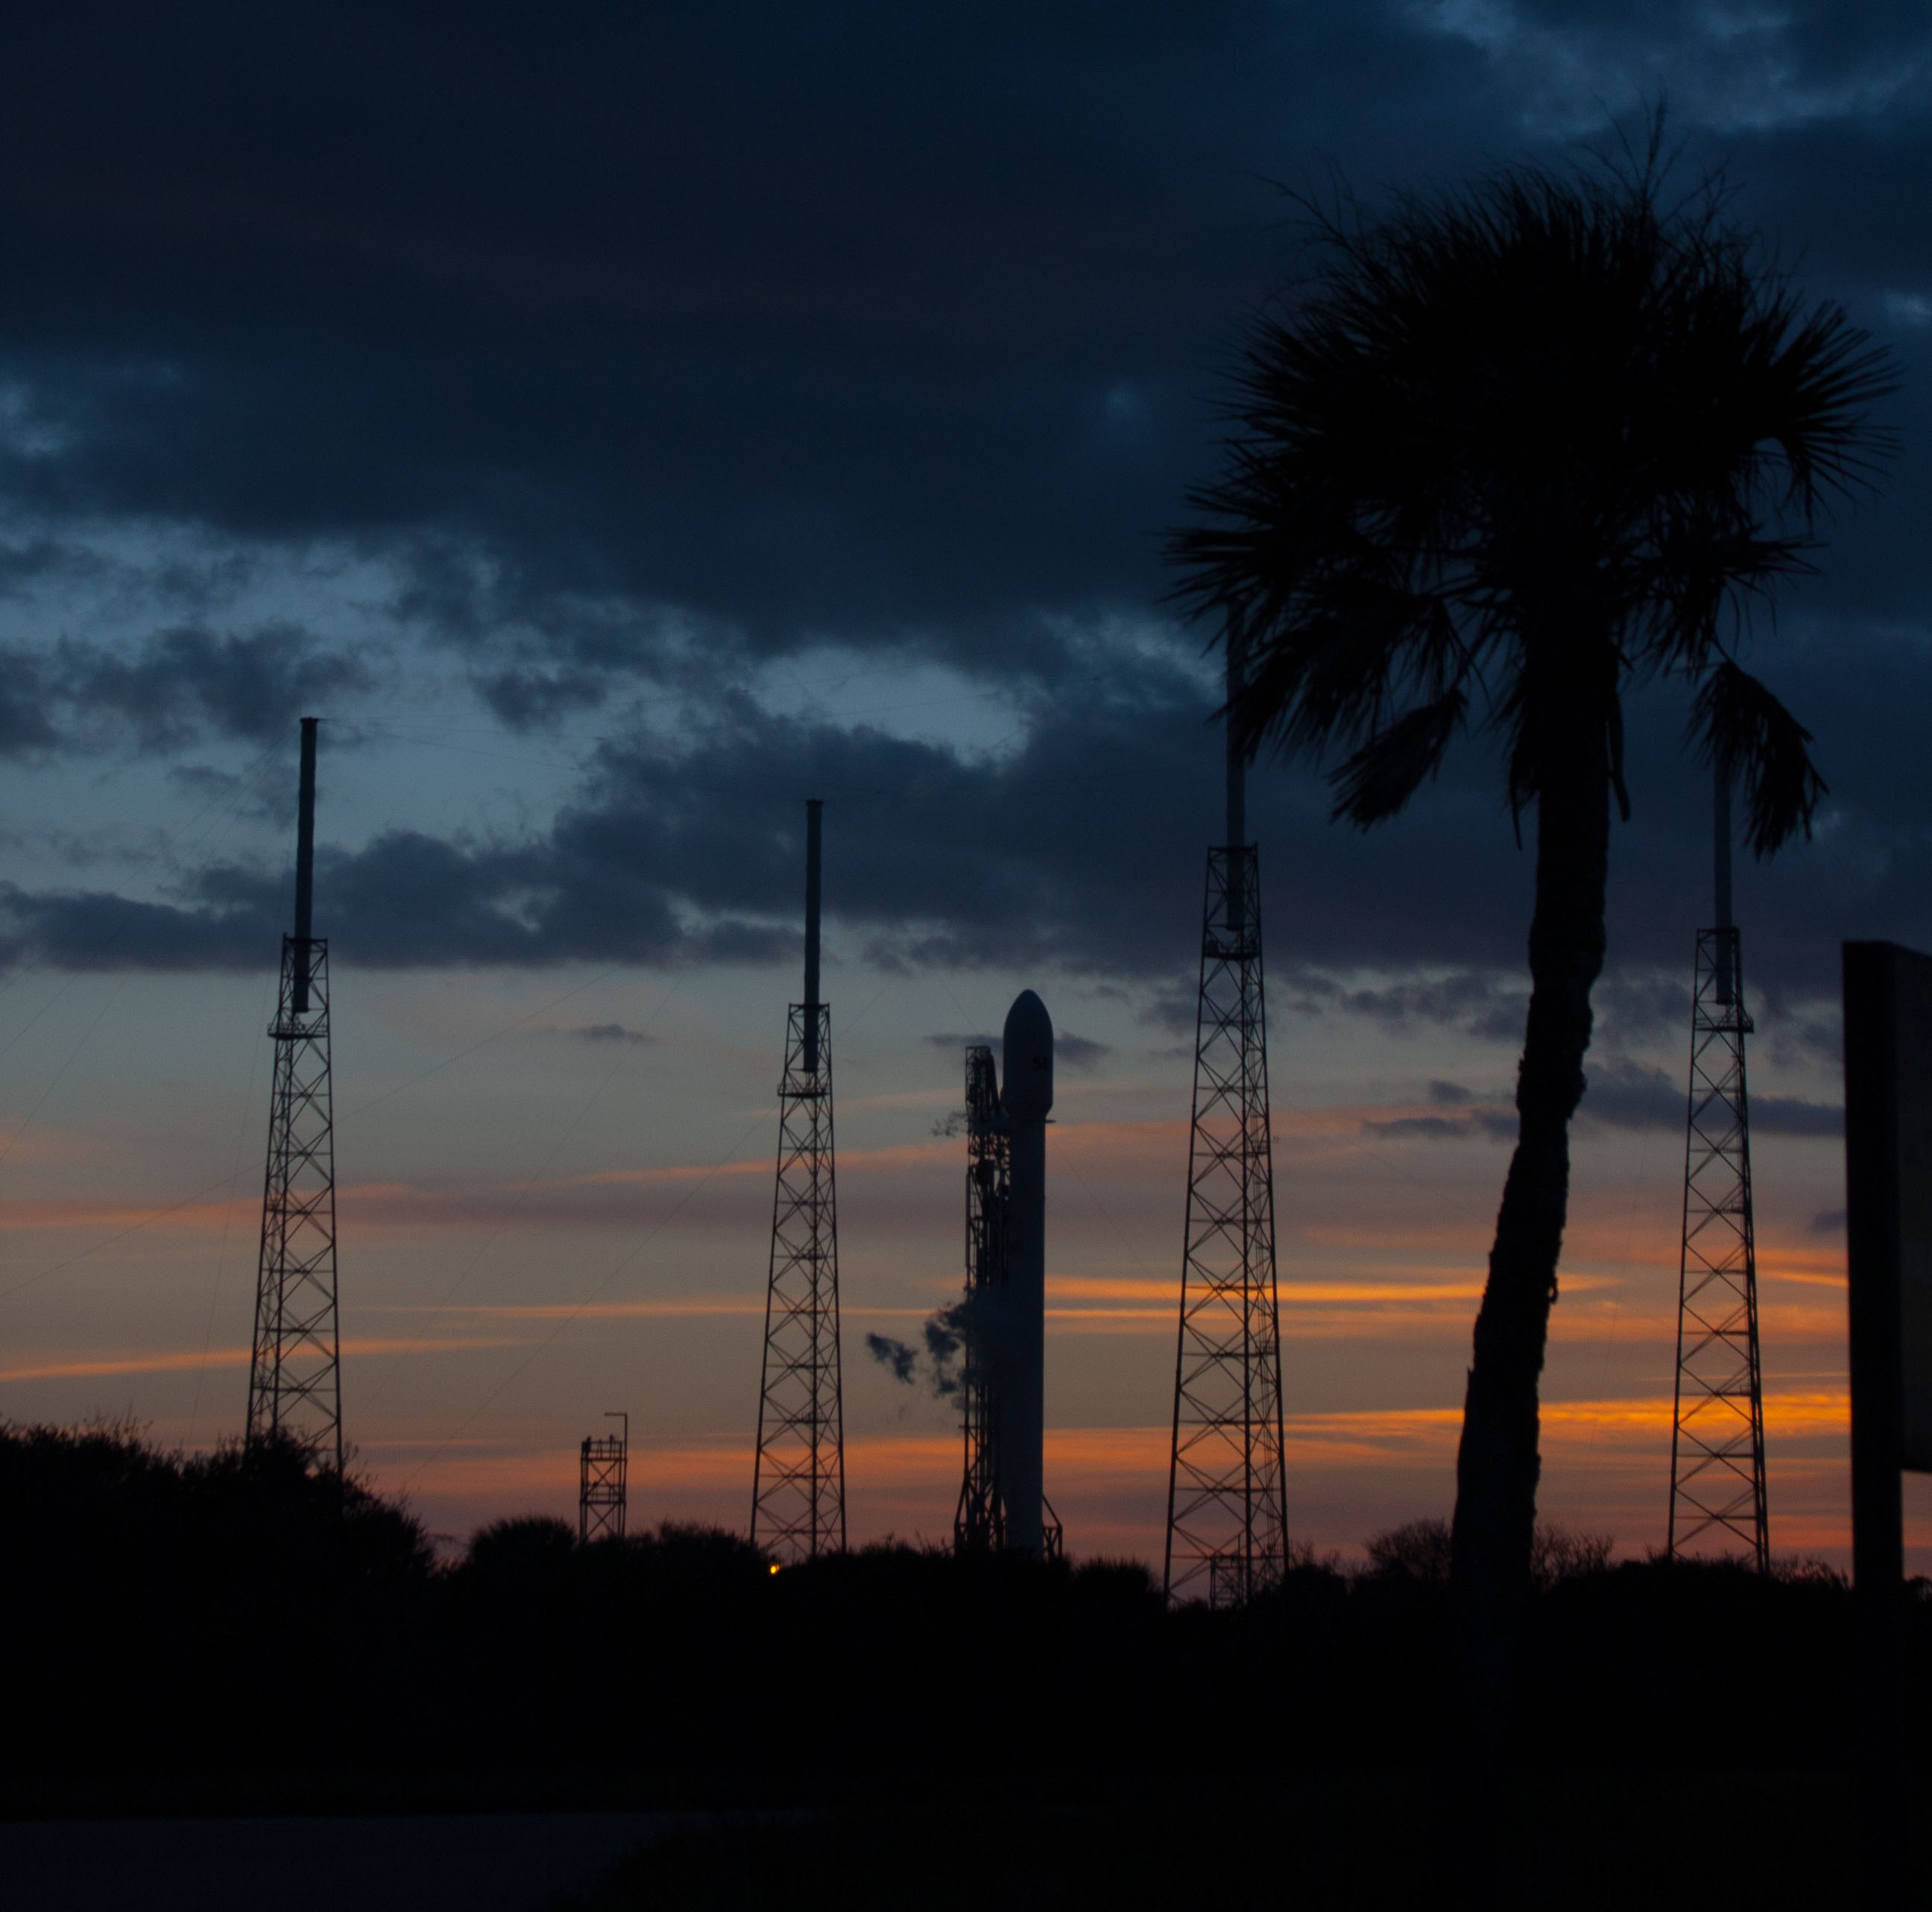 Falcon 9 Stands Ready on Launch Pad for SES-8 Satellite